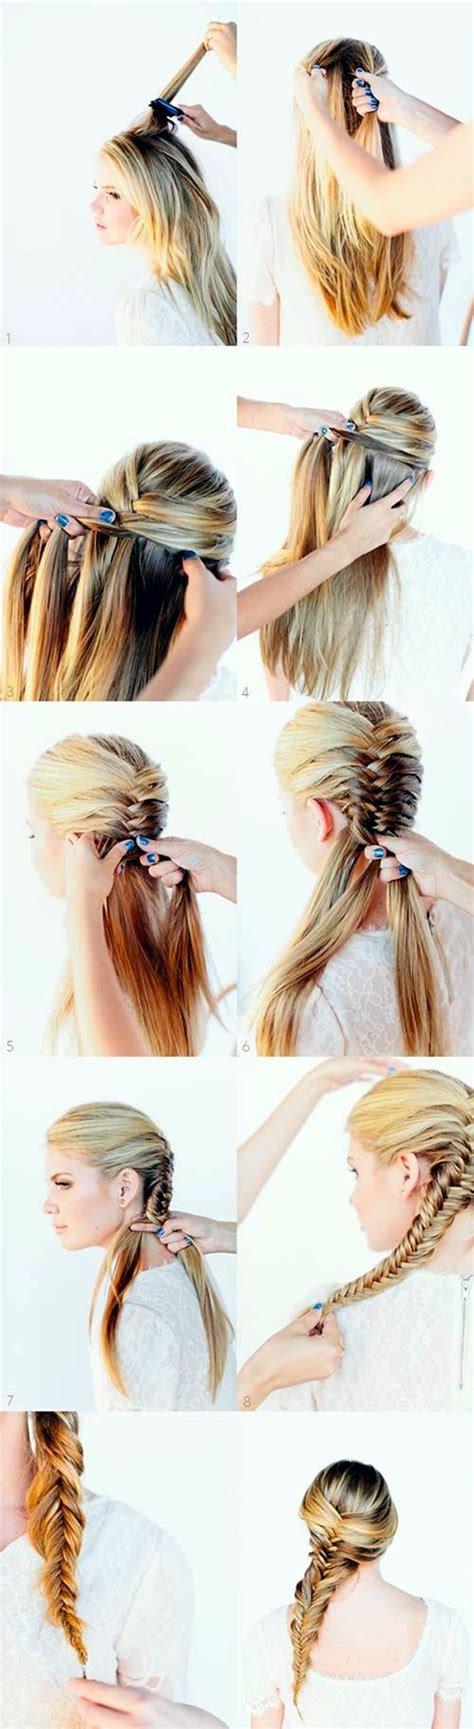 hairstyles every girl should know 5 braid styles every girl should know